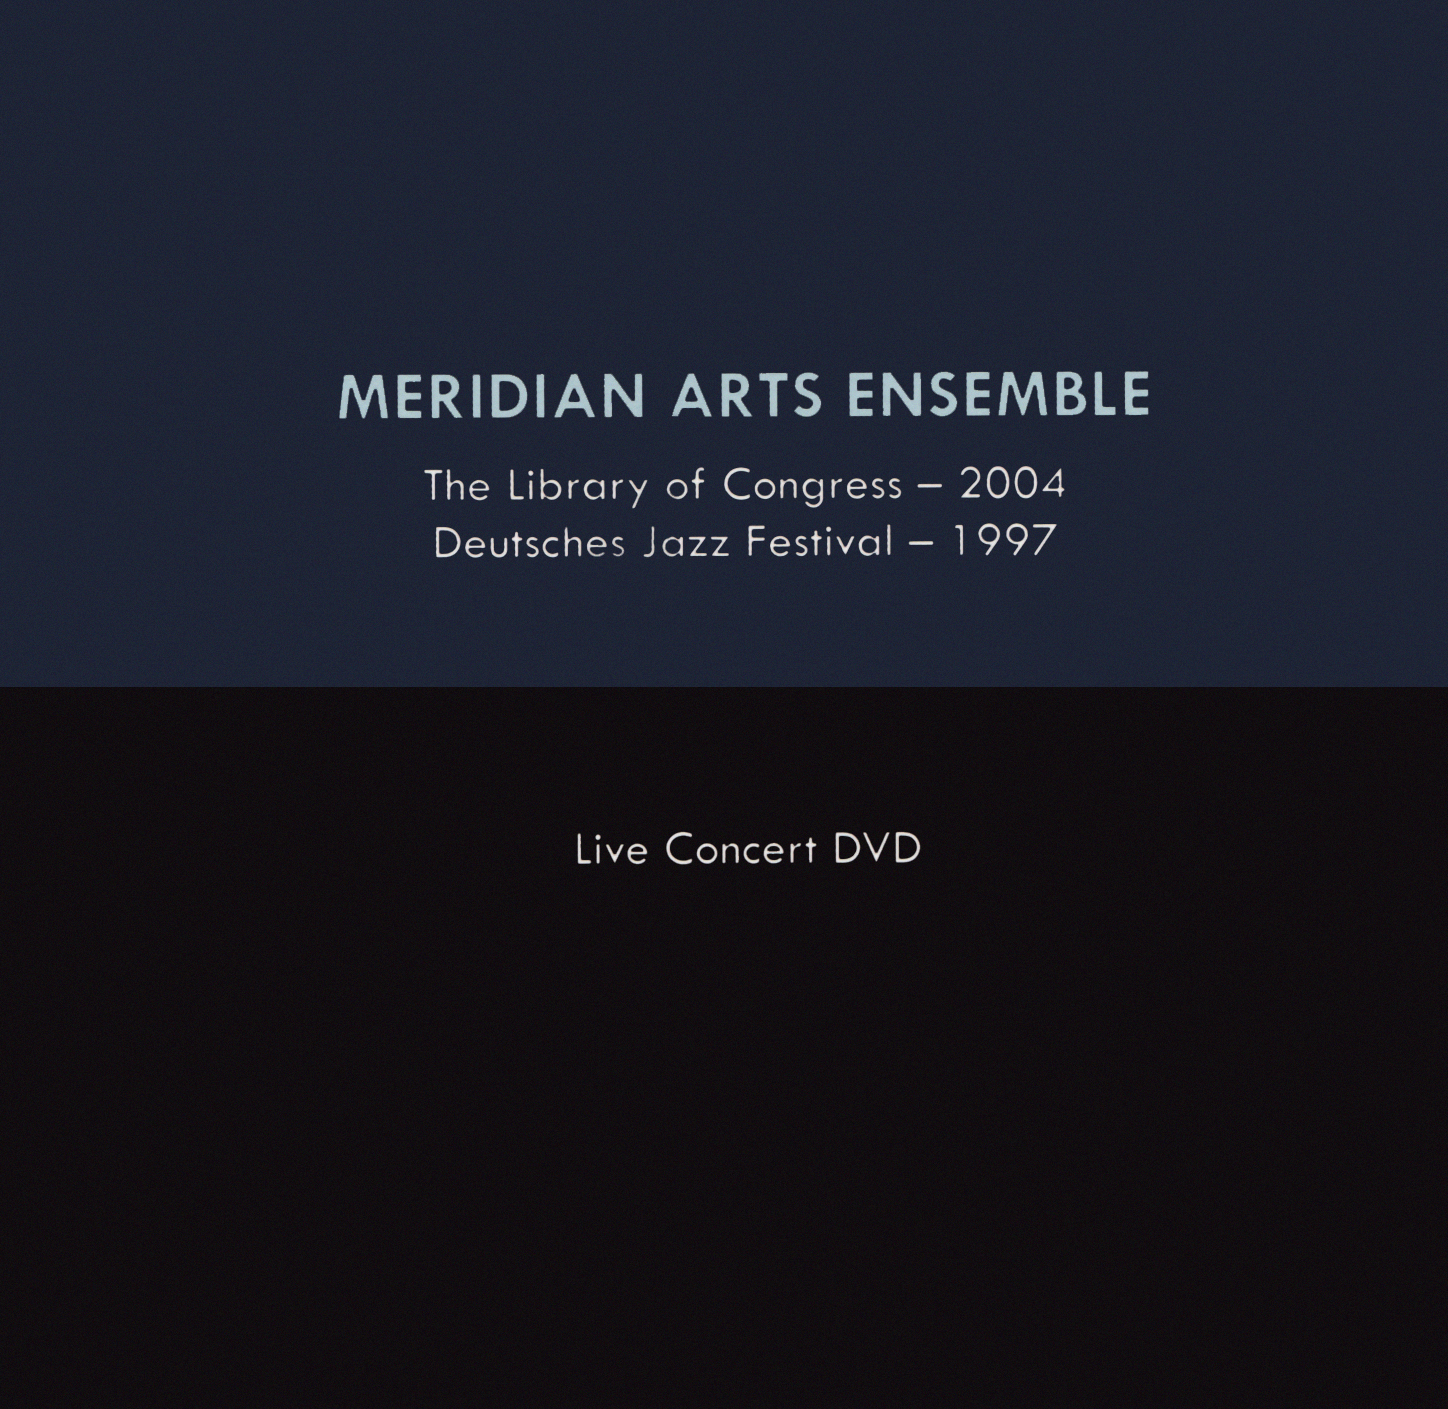 Meridian Arts Ensemble: The Library of Congress 2004/Deutsches Jazz Festival 1997